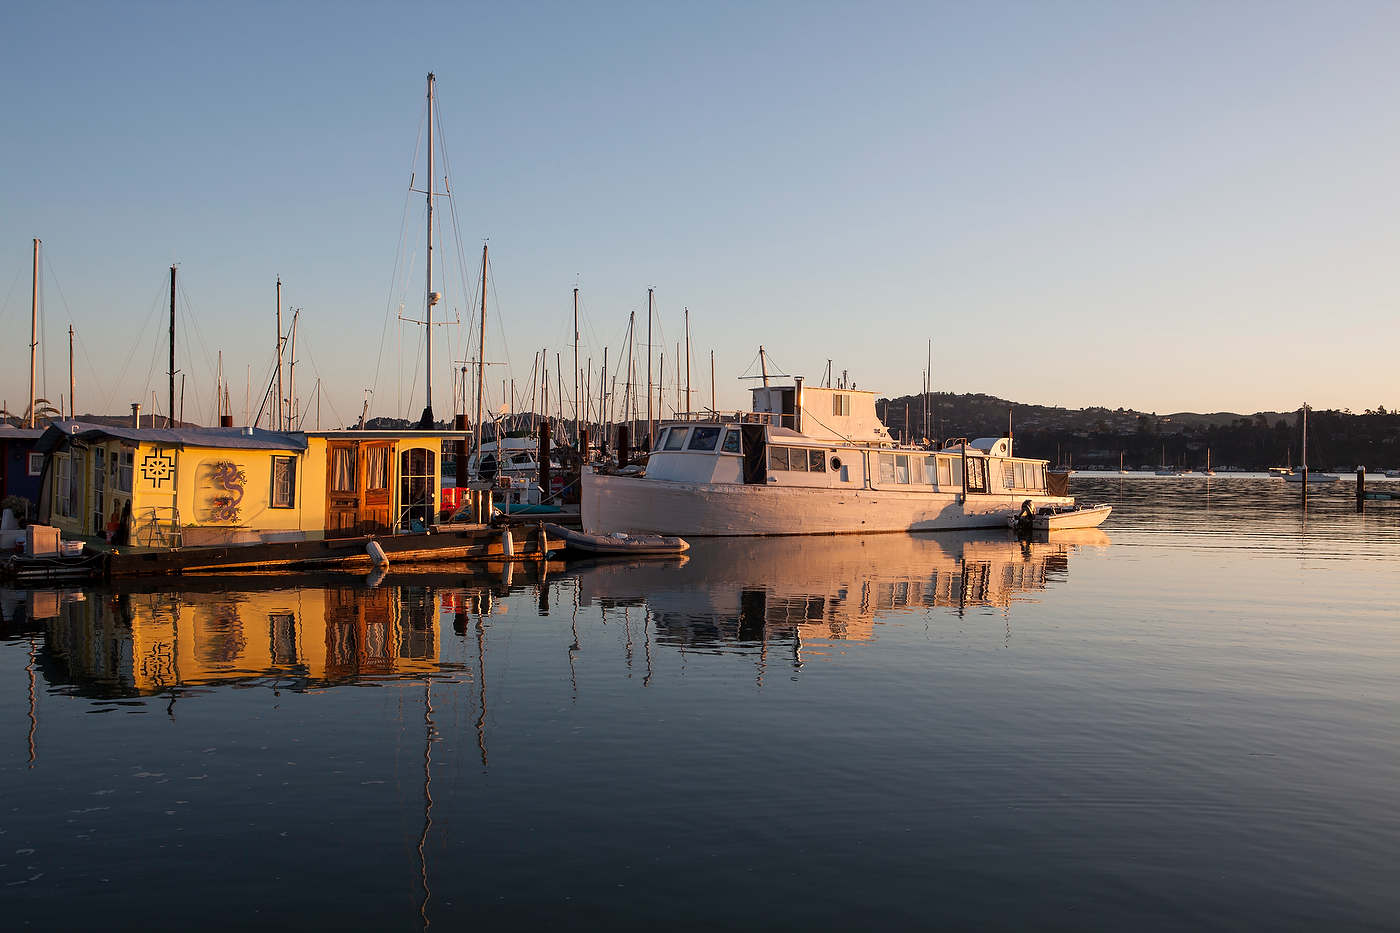 Houseboats at sunrise, Sausalito.